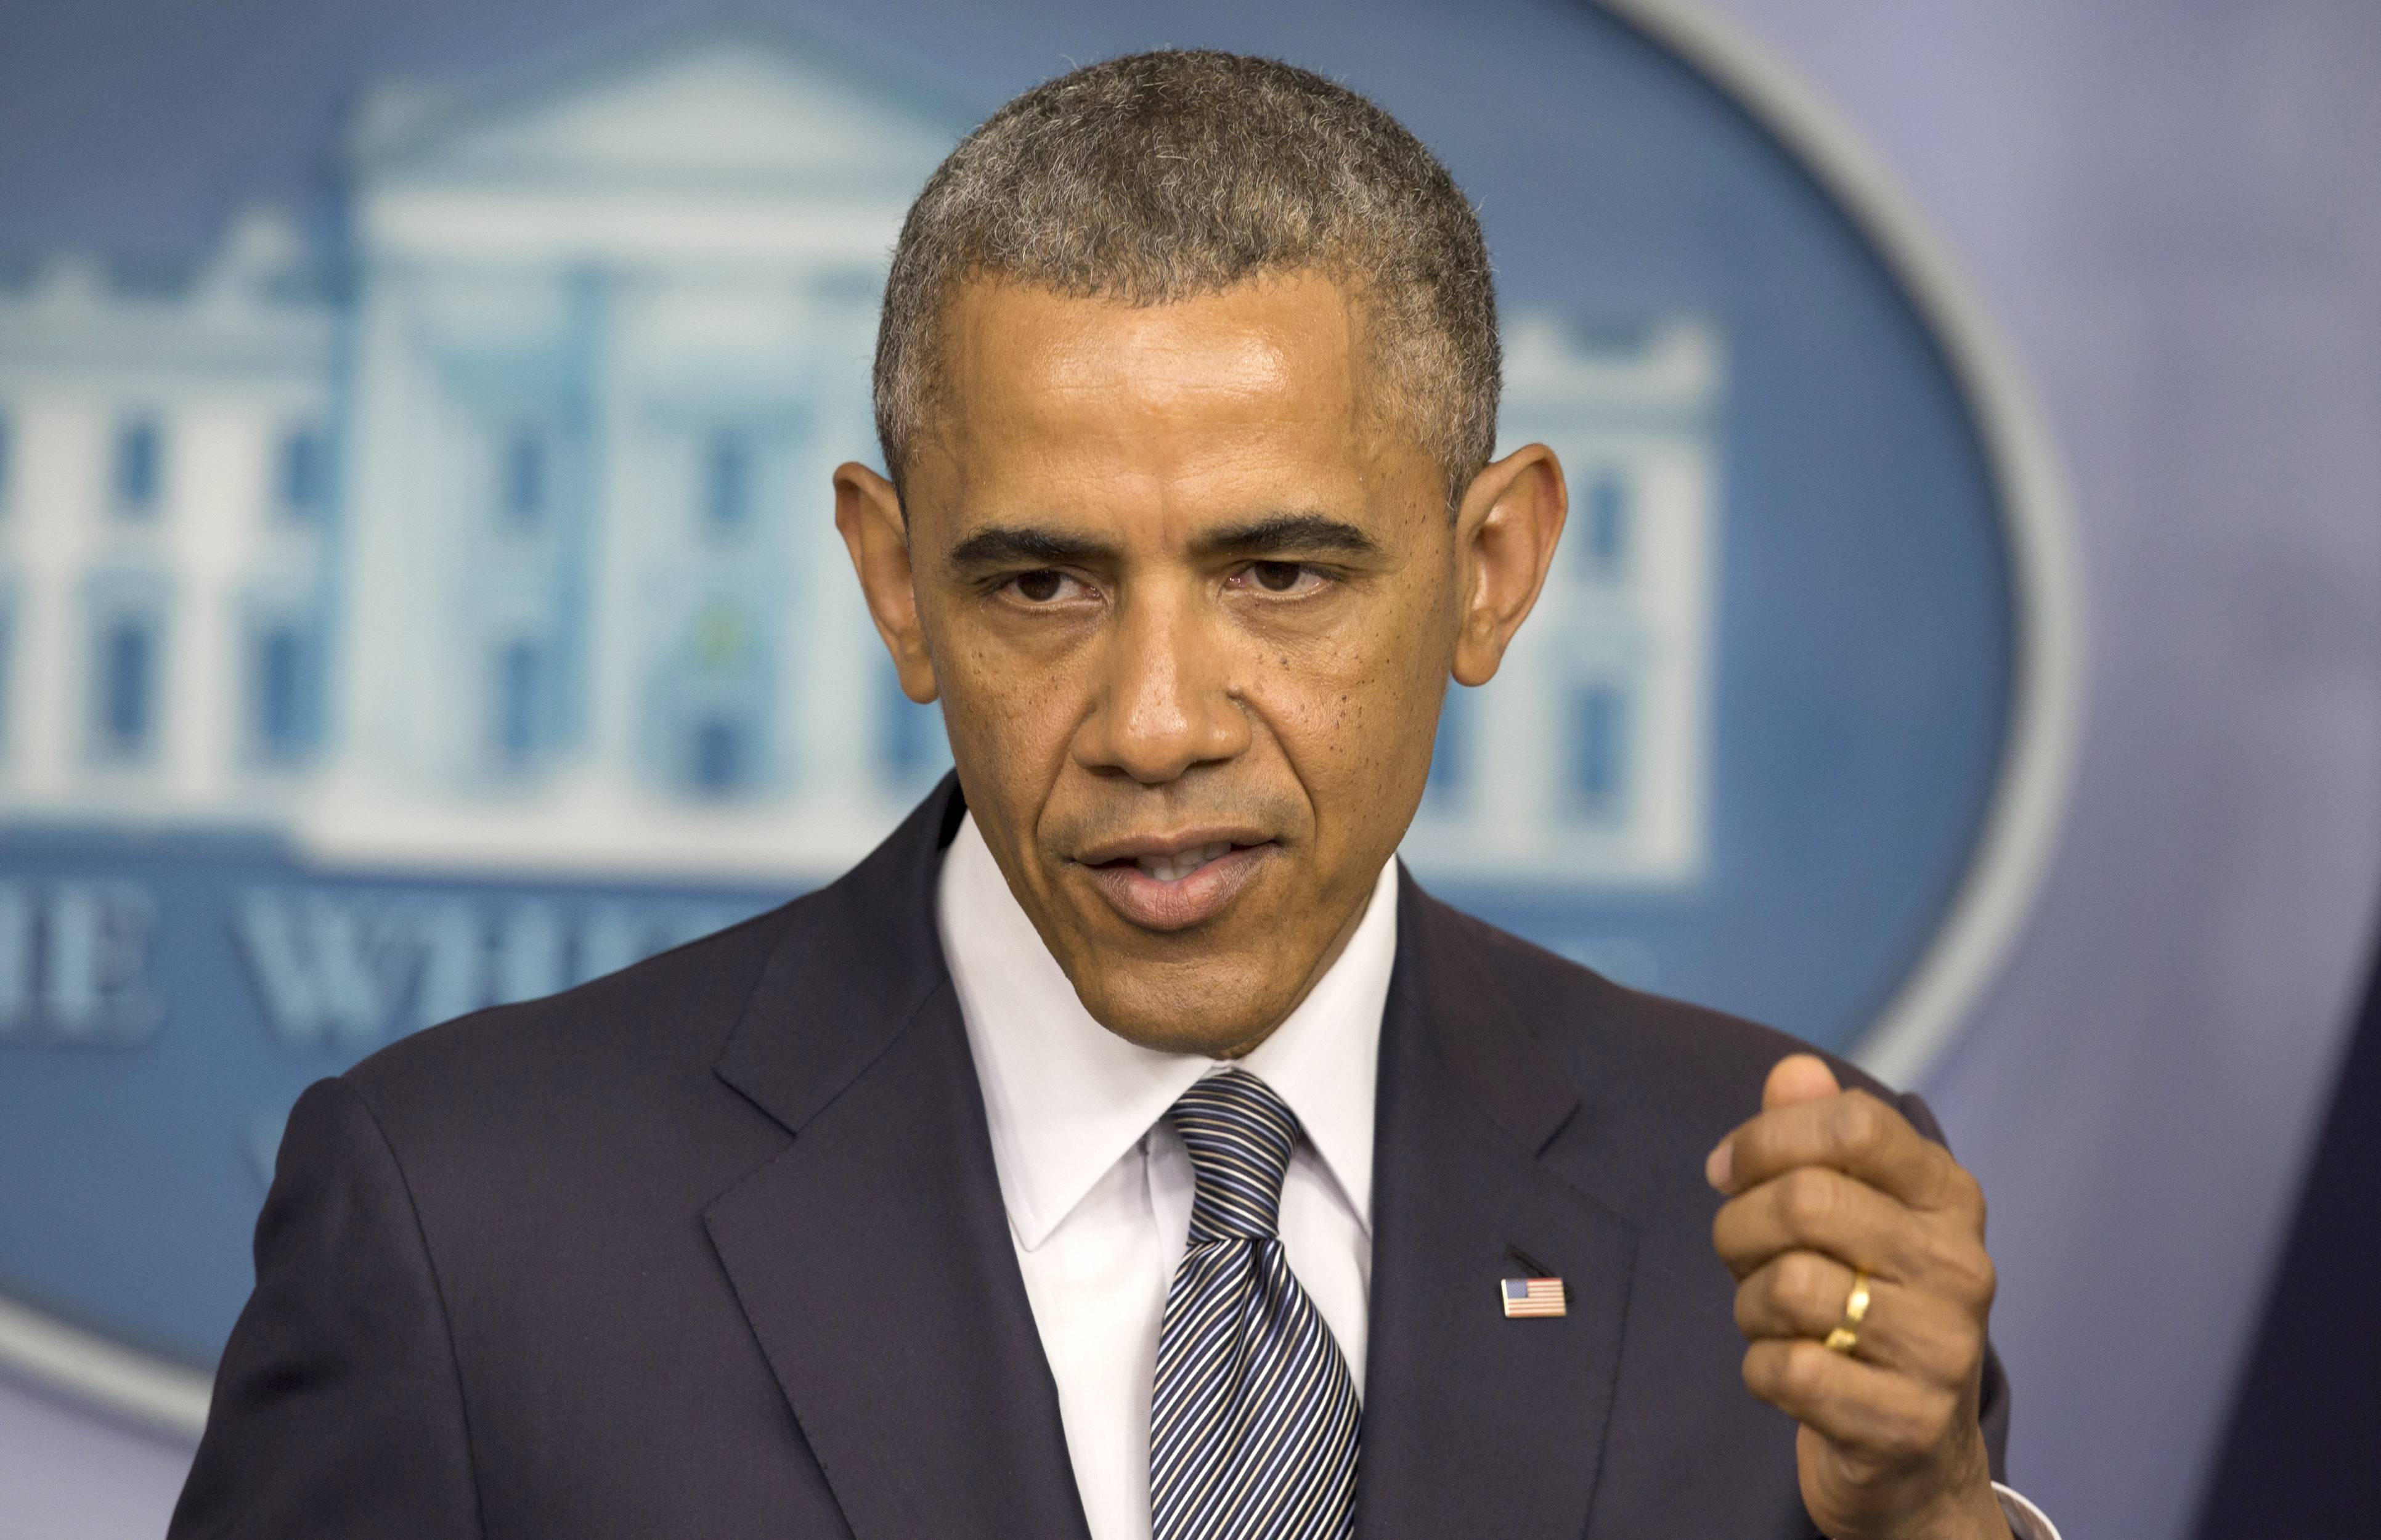 Associated Press President Barack Obama said one American was among the nearly 300 killed in the downing of a passenger jet over Ukraine and called for an immediate cease-fire to allow for an unfettered investigation. Evidence indicates that Malaysia Airlines Flight 17 was shot down by a surface-to-air missile from an area controlled by Russian-backed separatists.